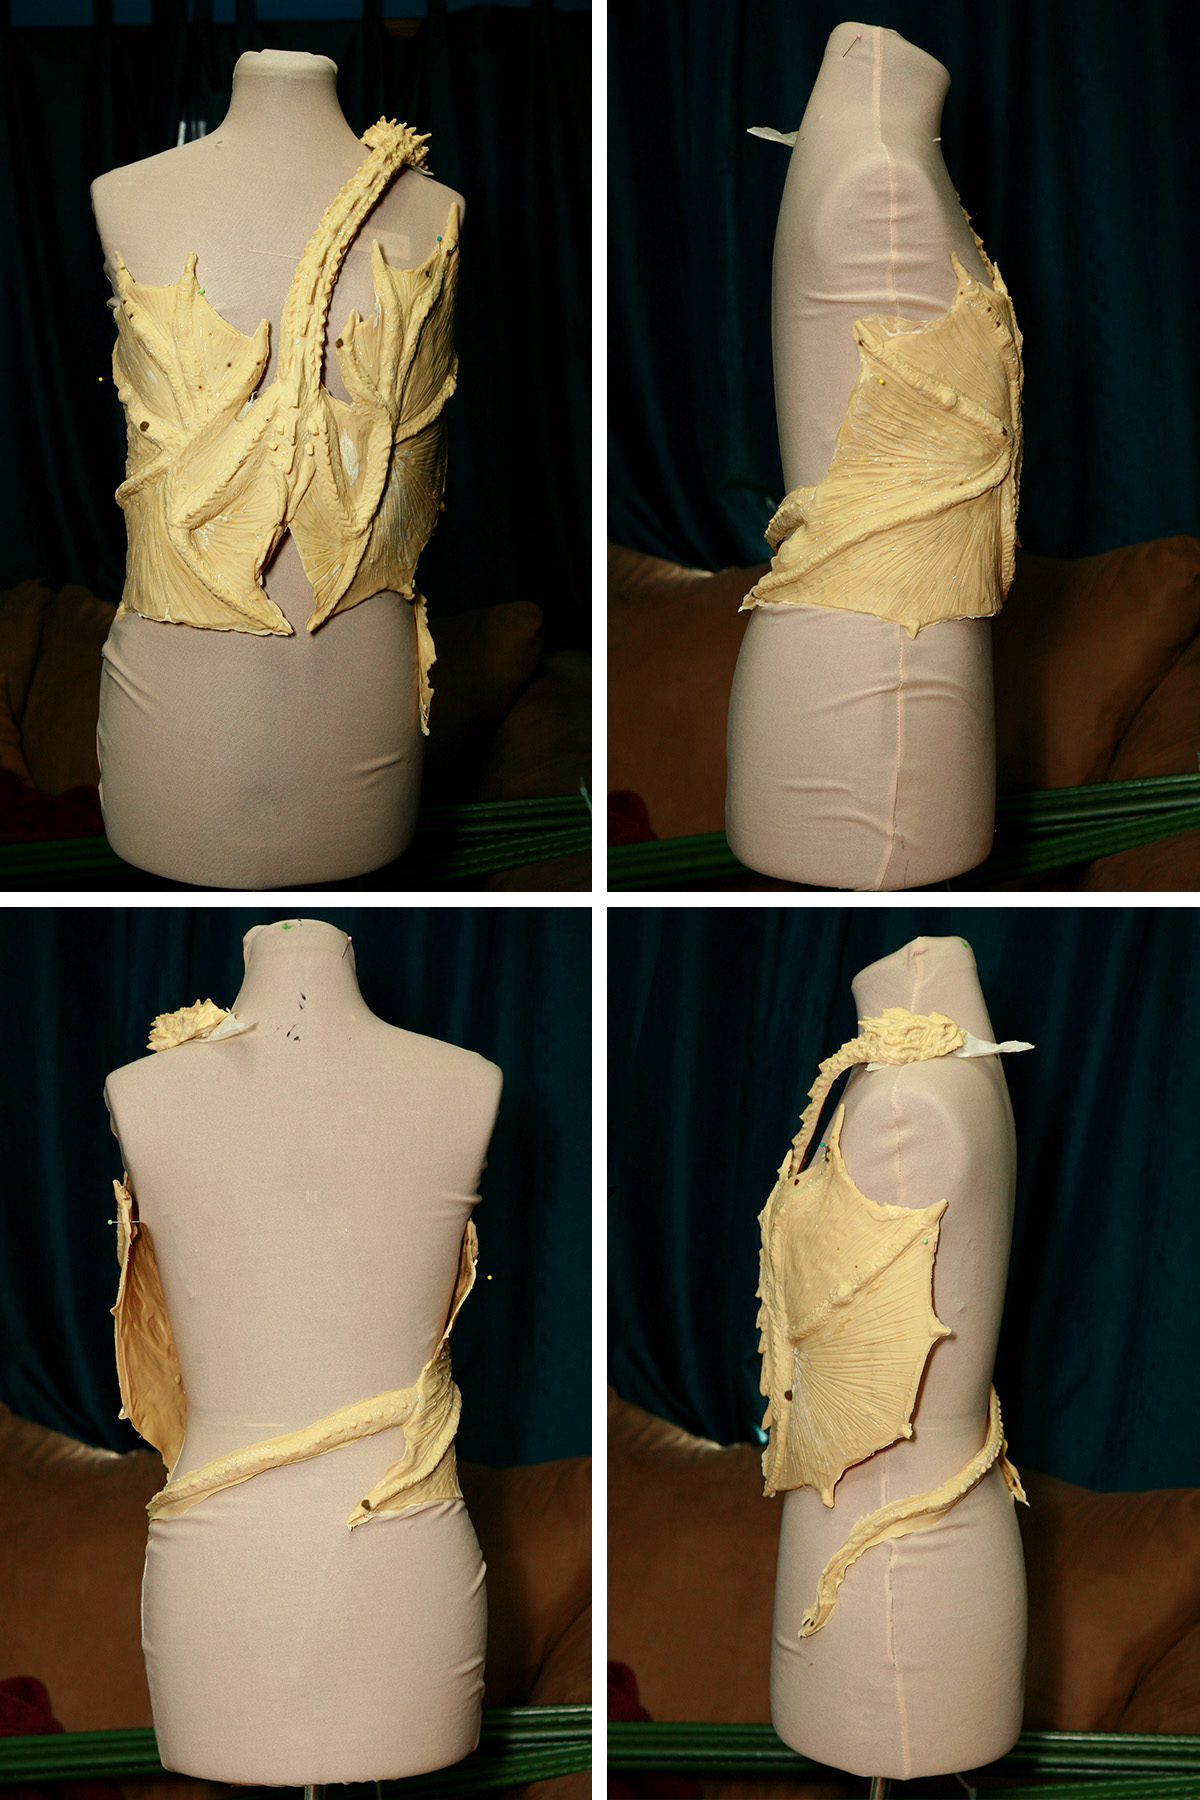 A 4 part compilation image showing 4 different views of the freshly unmolded - and beige - latex dragon top, set up on a dress form.